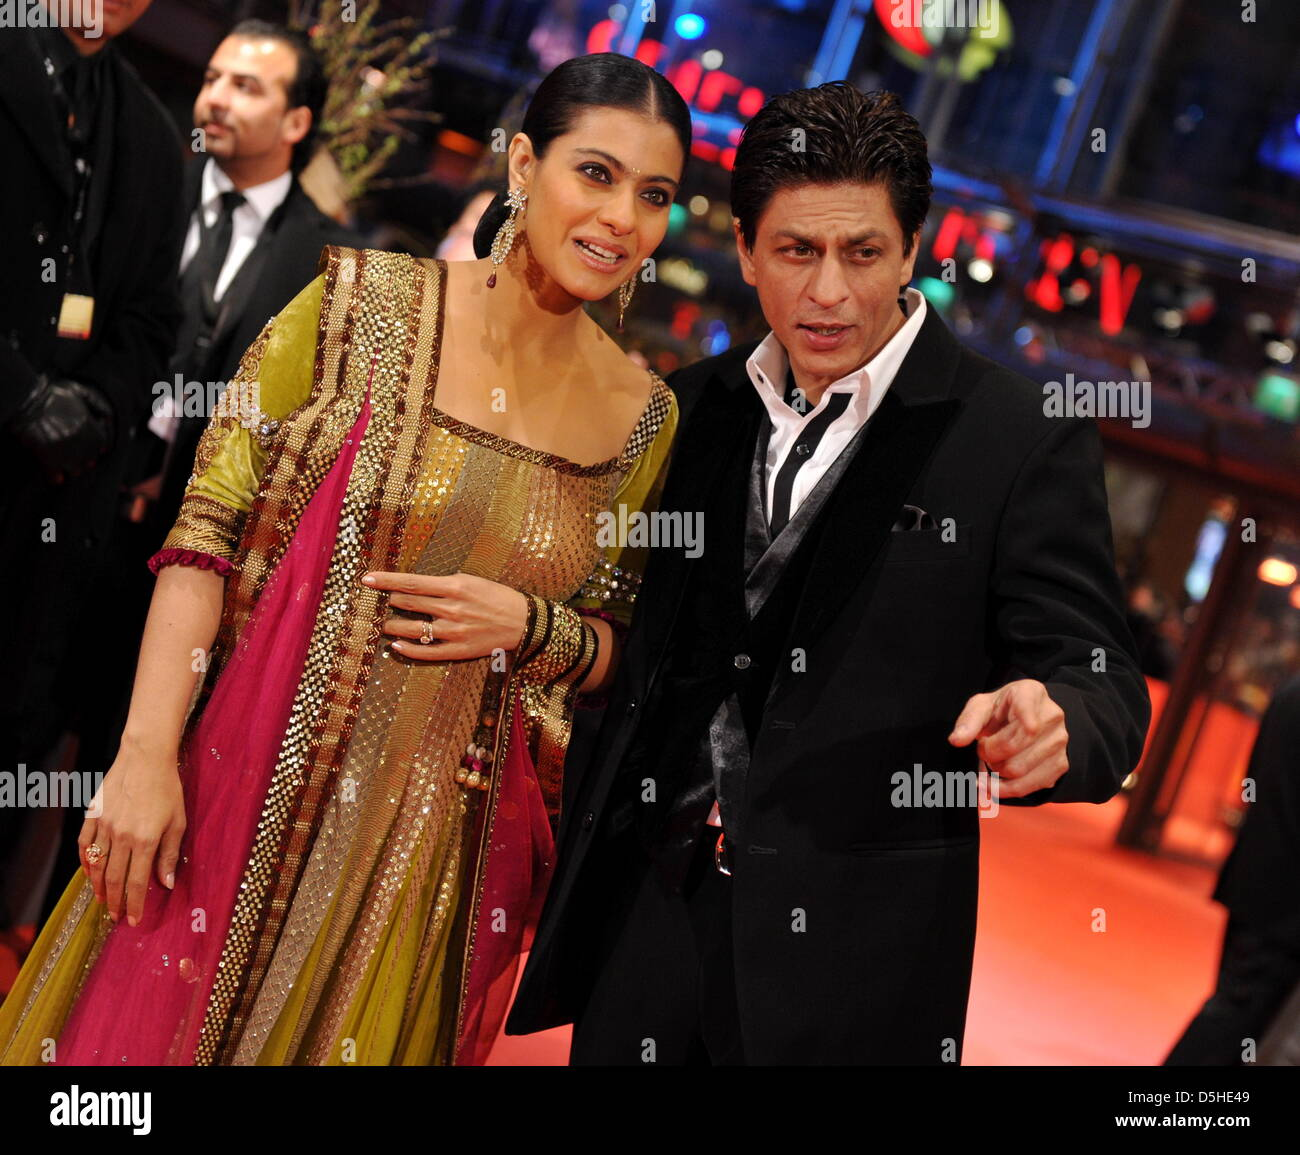 Indian Actor Shah Rukh Khan And Actress Kajol Devgan Arrive For The Premiere Of